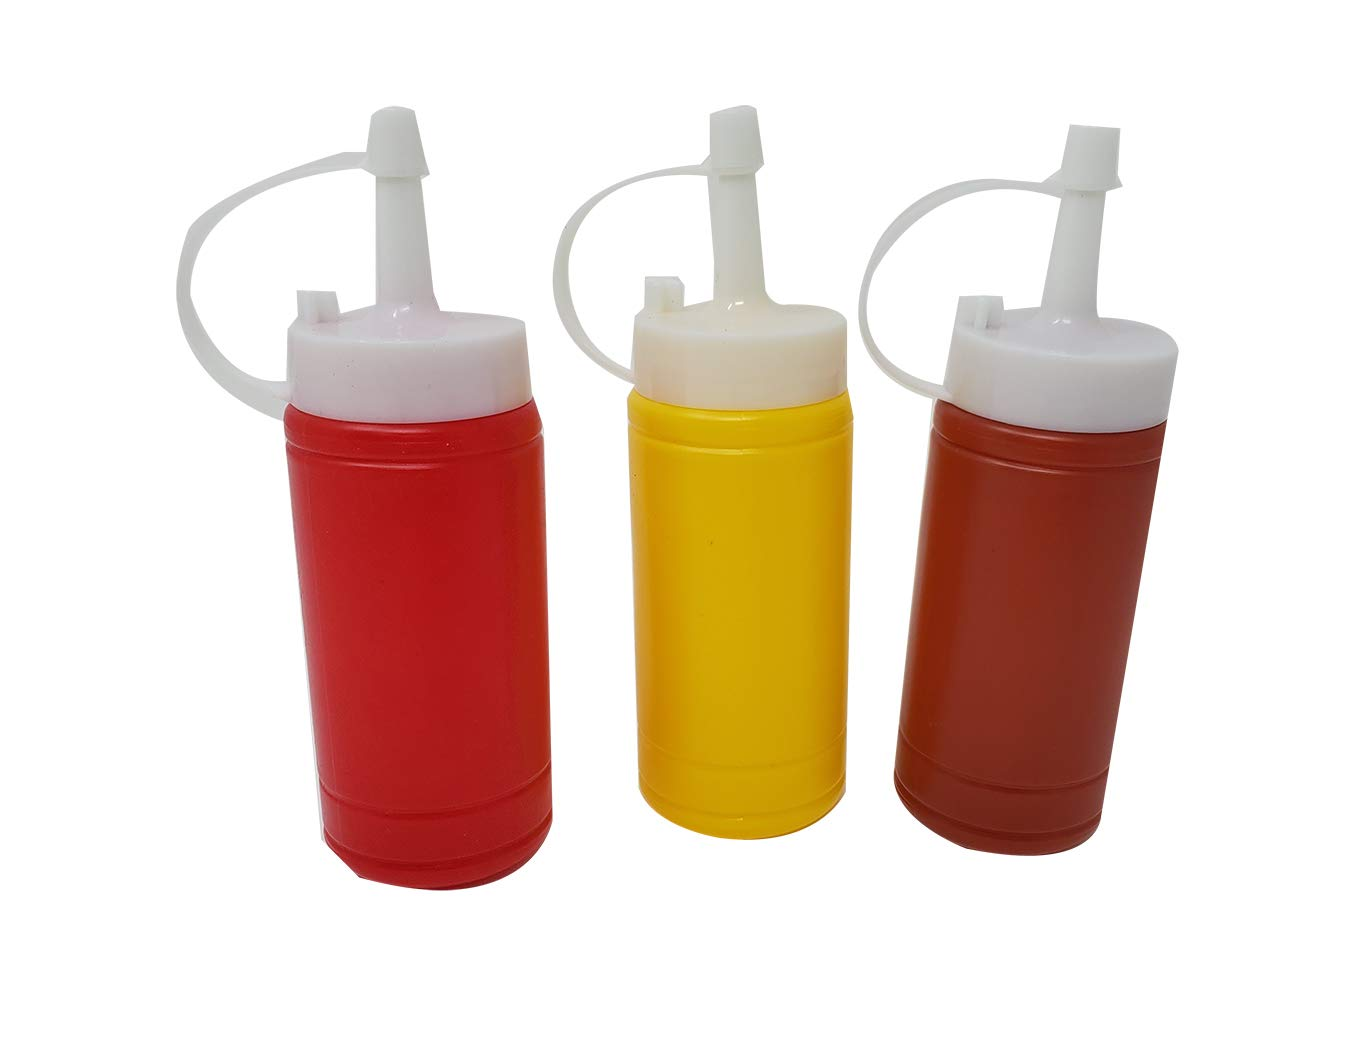 Mini Condiment Dispenser Set Ketchup, Mustard & BBQ sauce (12 bottles) squeeze bottles 6 Oz. by aaco (Image #3)